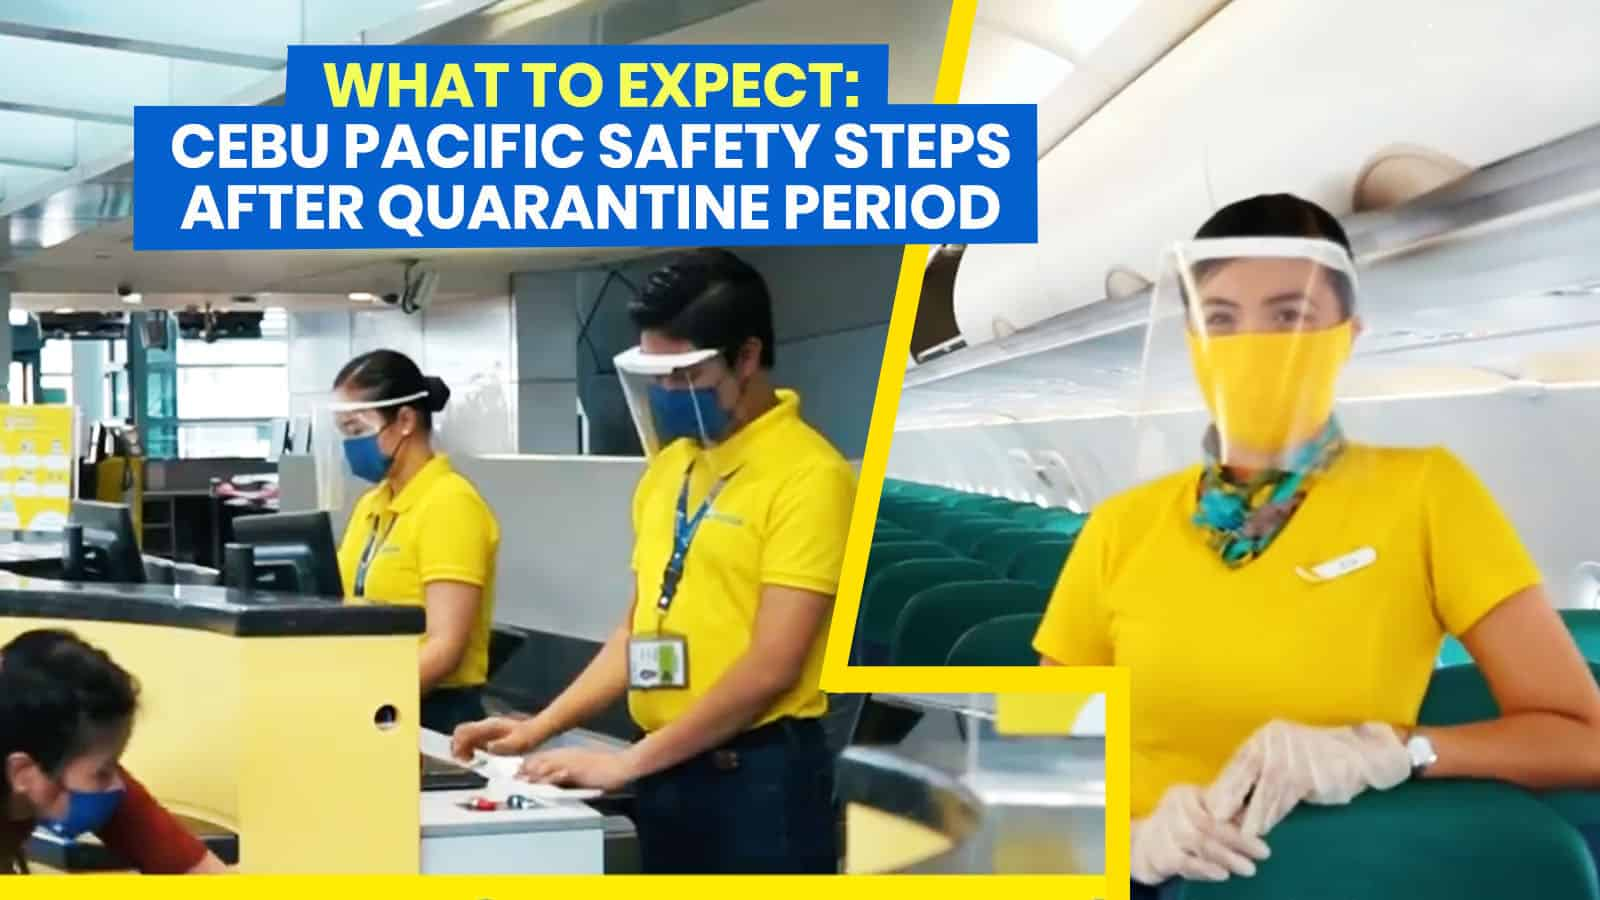 WHAT TO EXPECT when Flying with CEBU PACIFIC after Quarantine Period